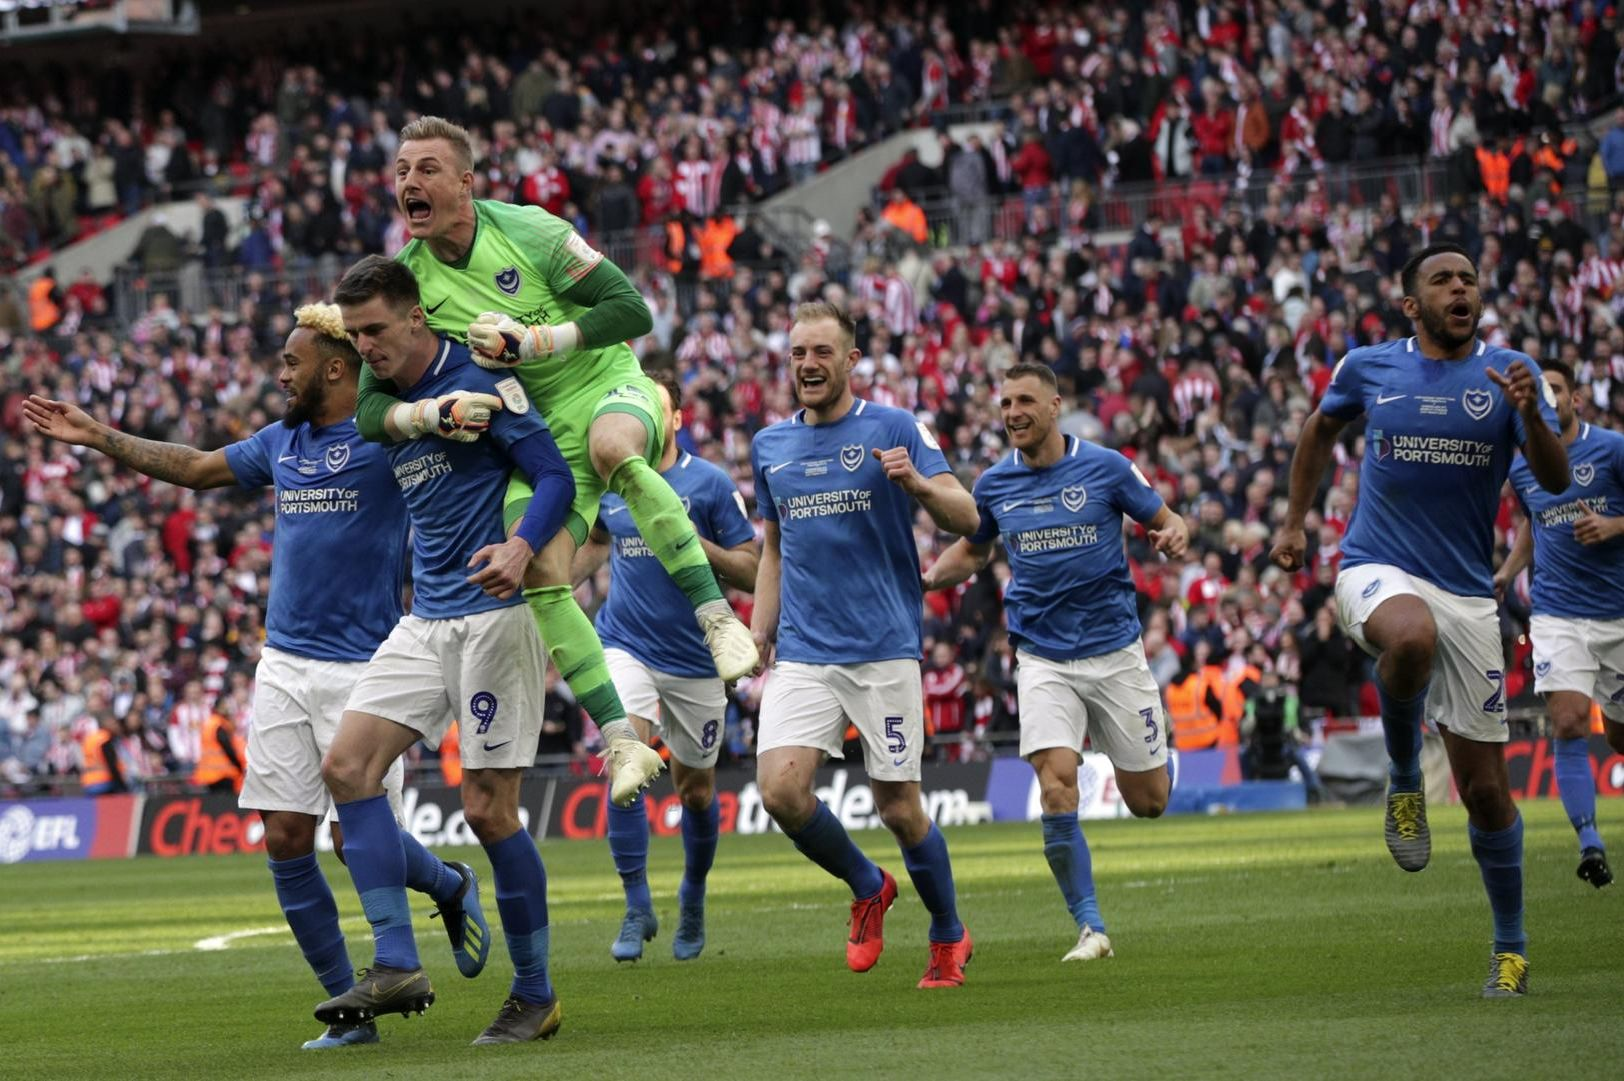 Pompey celebrate their Checkatrade Trophy triumph at Wembley. Picture: Barry Zee